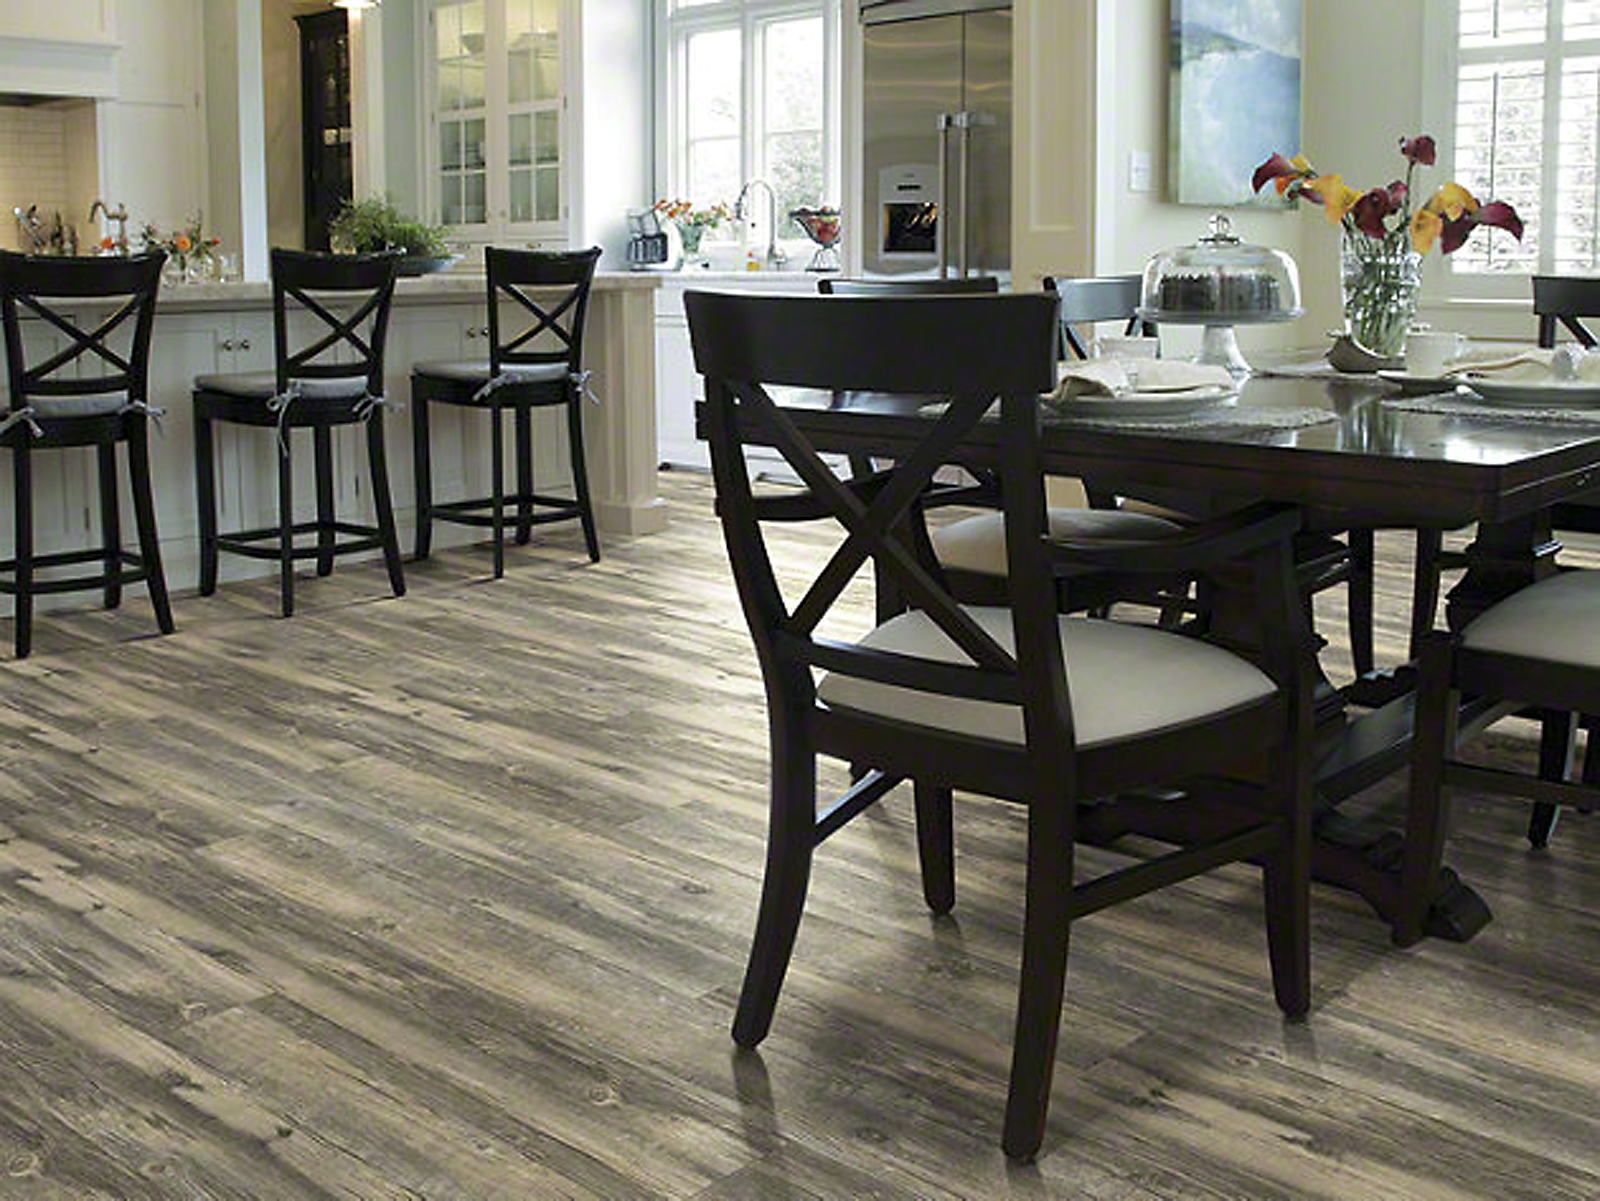 Northampton is a moisture-resistant plank that features seven-year light commercial Virgin vinyl, making it durable and easy to clean. (Submitted photo)